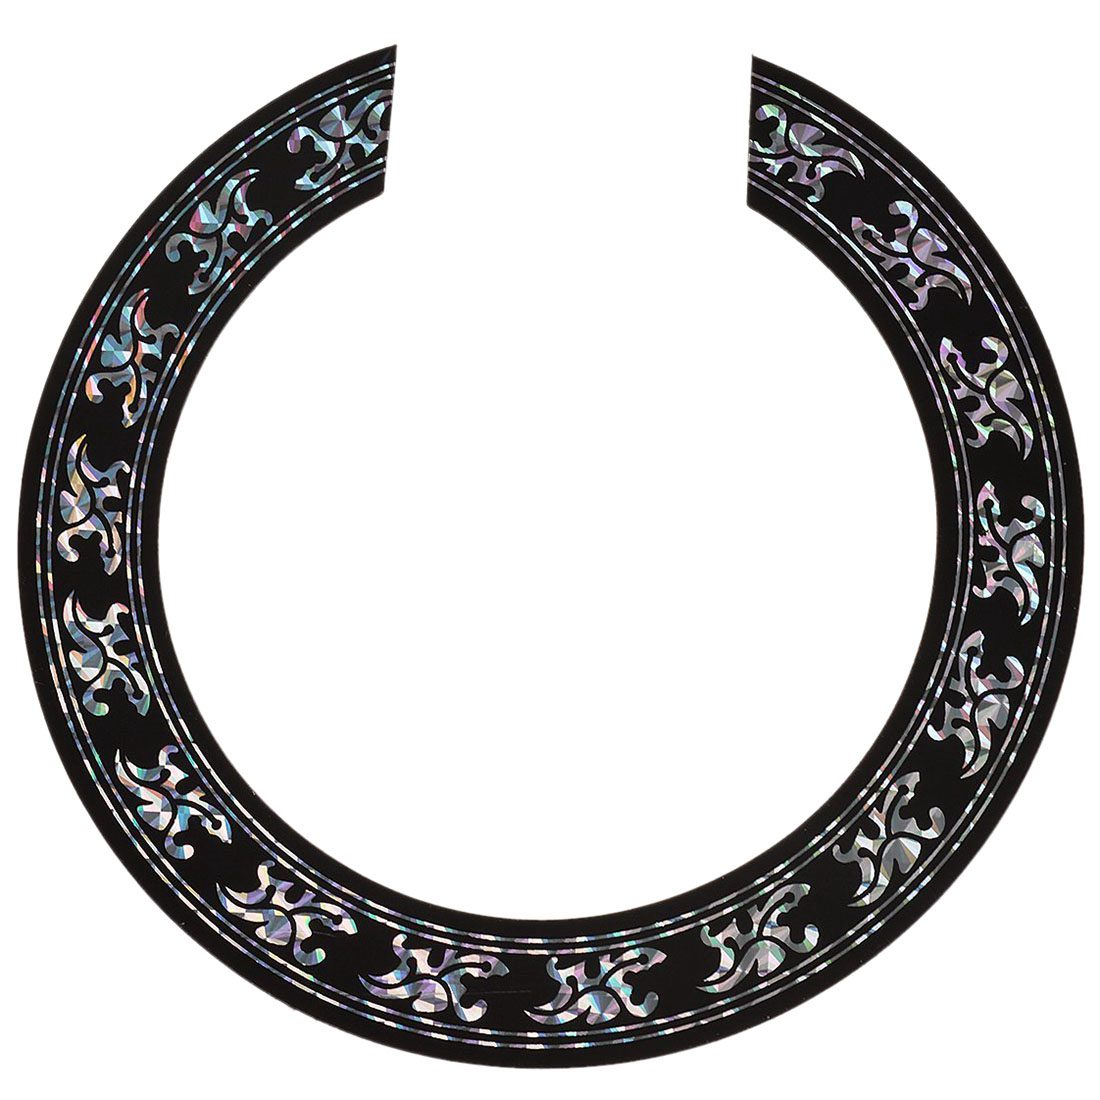 Sound hole Rose Decal Sticker for Acoustic Classical Guitar Parts Black+Silver alloy classical guitar capo black silver